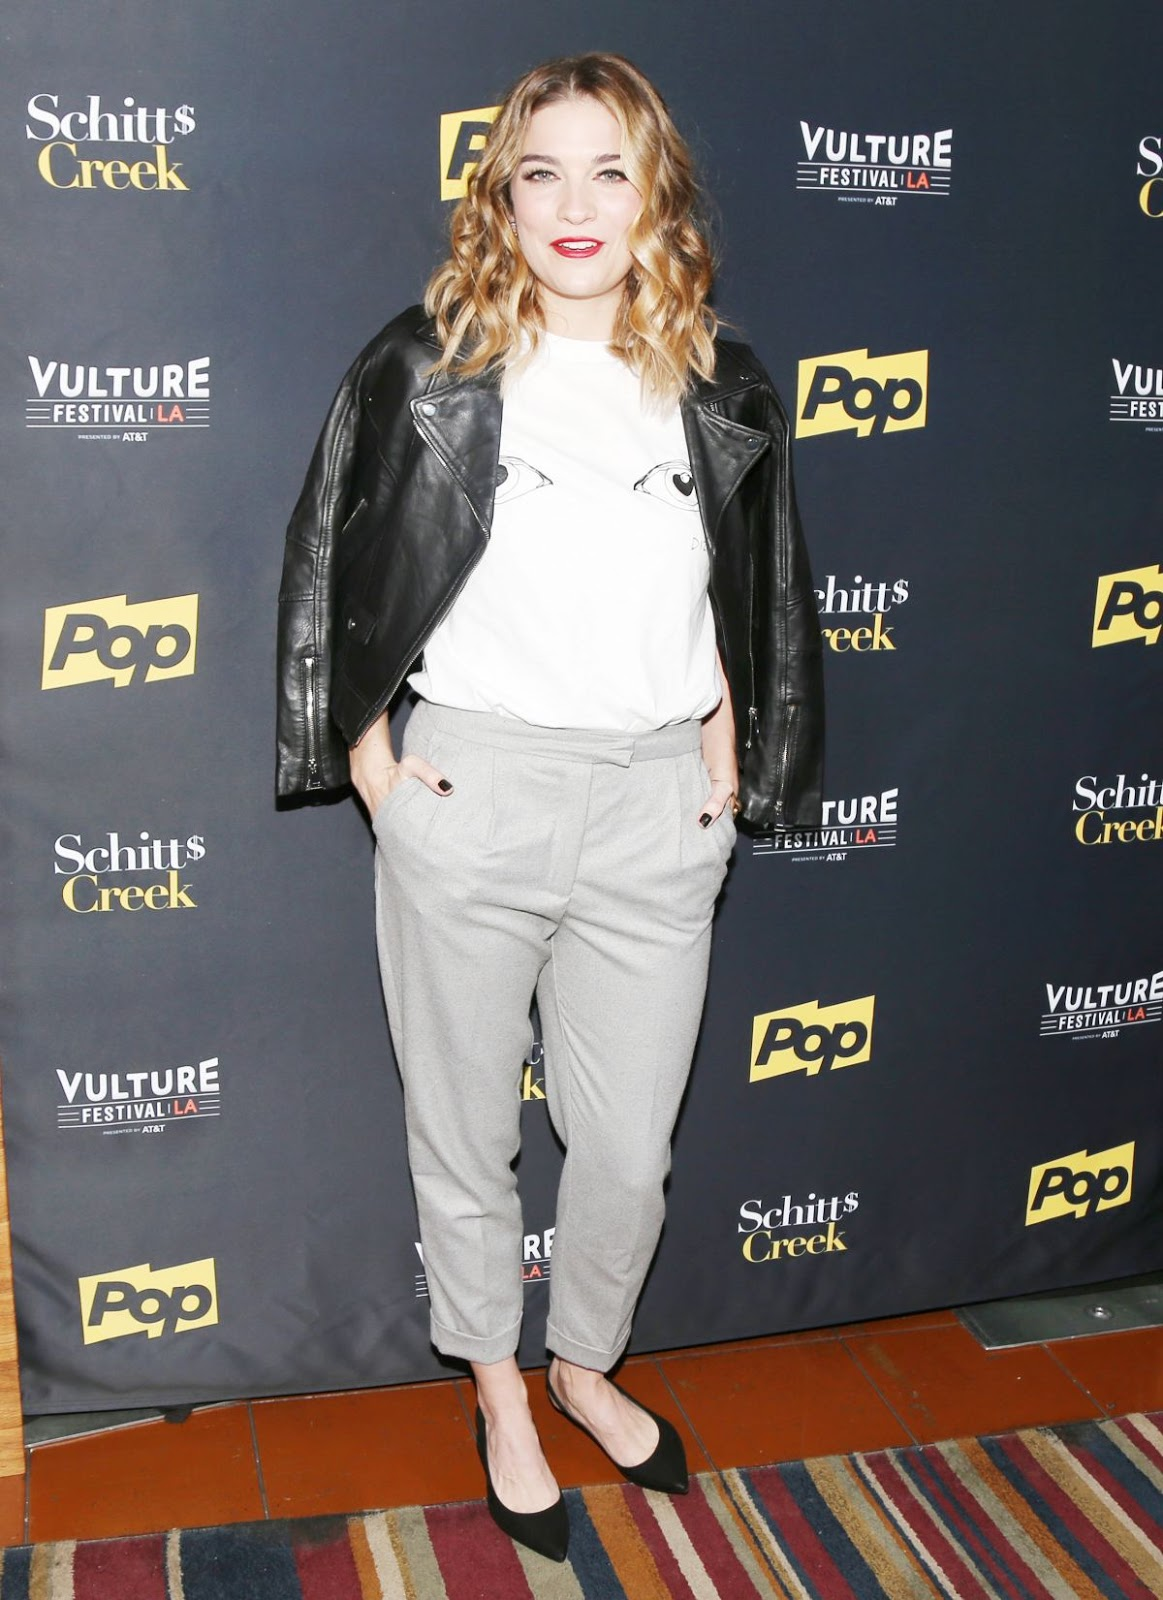 Photos of Annie Murphy at Schitt's Creek Panel at Vulture Festival in Los Angeles